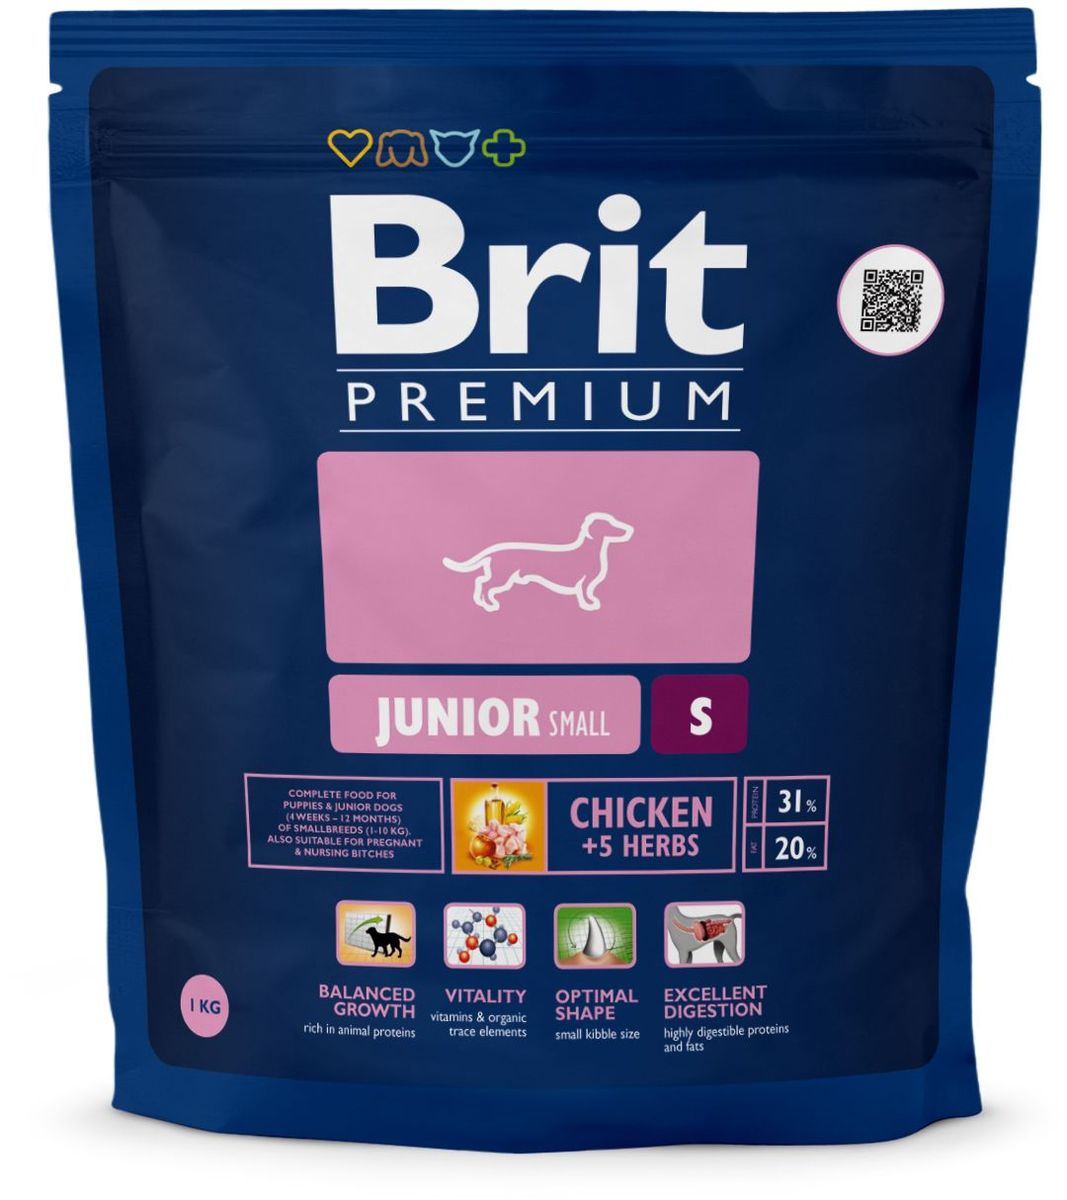 Корм сухой Brit Premium Junior S для молодых собак мелких пород, с курицей, 1 кг корм для всех пород собак brit premium гипоаллергенный 1 кг